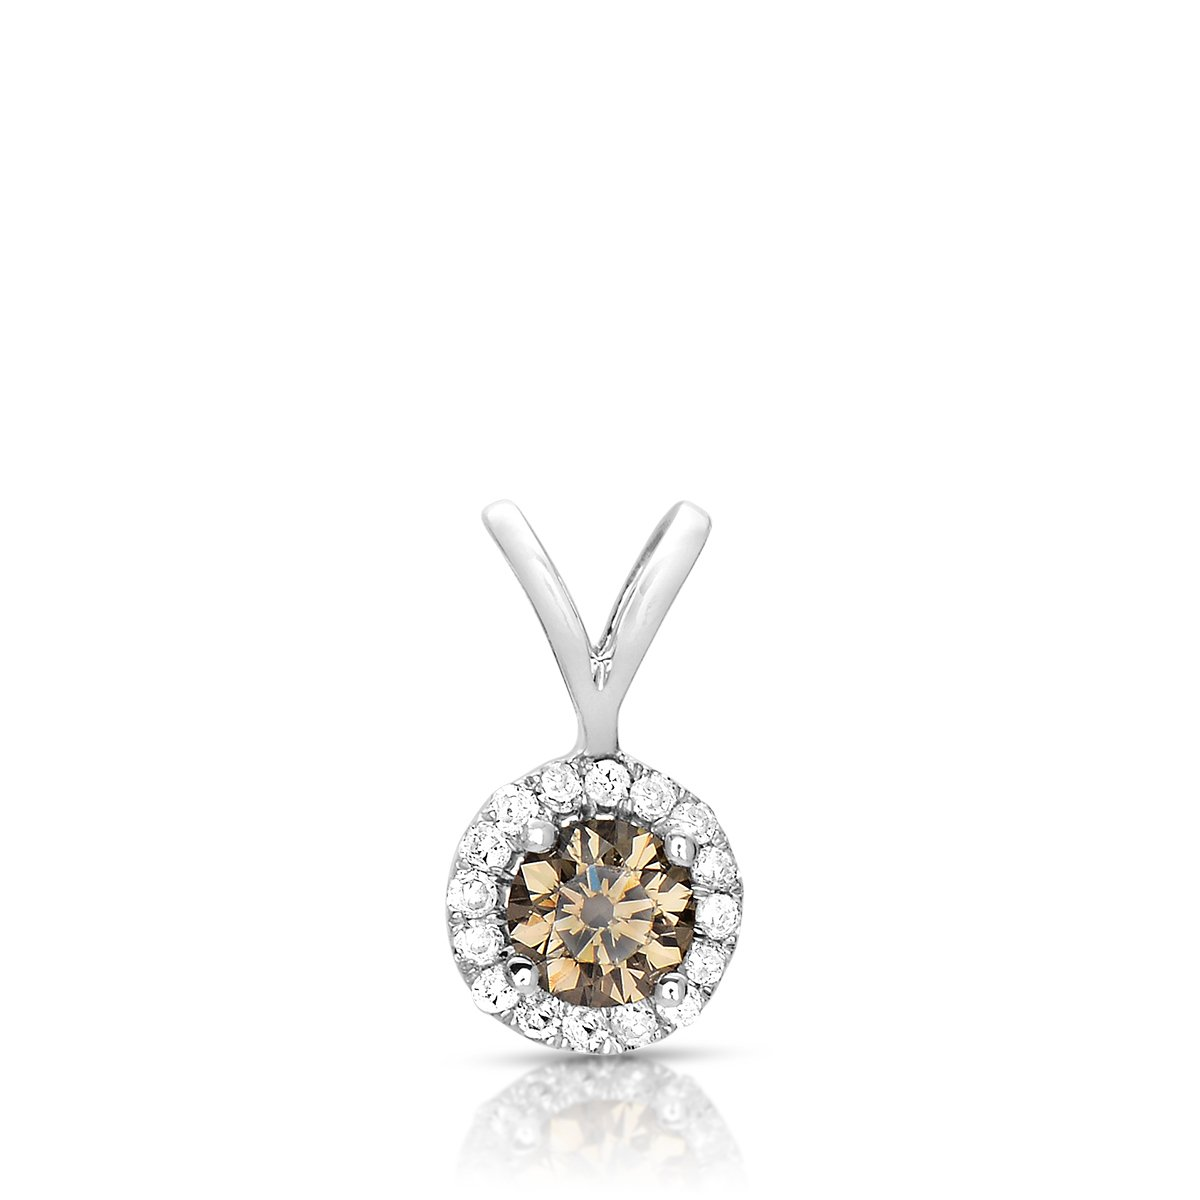 0.75 ct Chocolate Brown Diamond Halo 14k White Gold Pendant Necklace Set (K1295-075WBR)